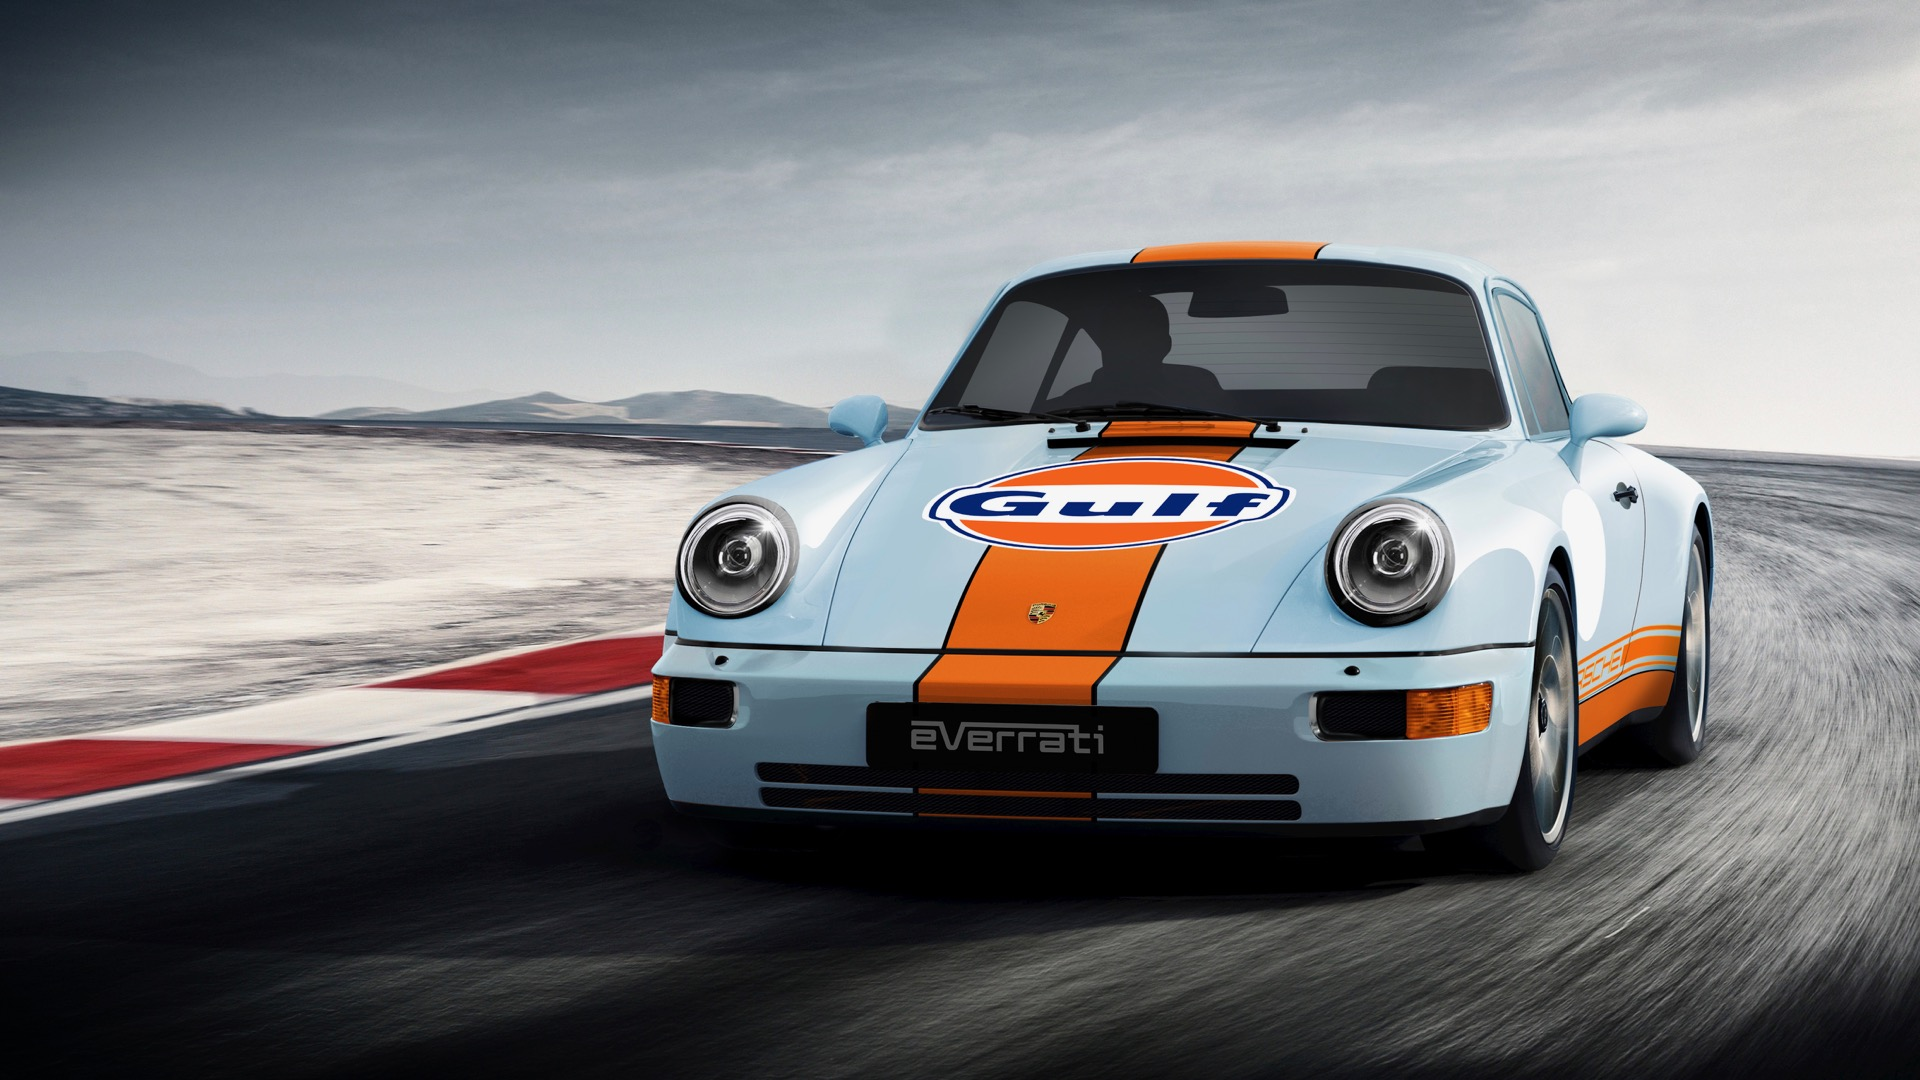 Electrify your Porsche 911 in stealth by giving it a Gulf Oil livery